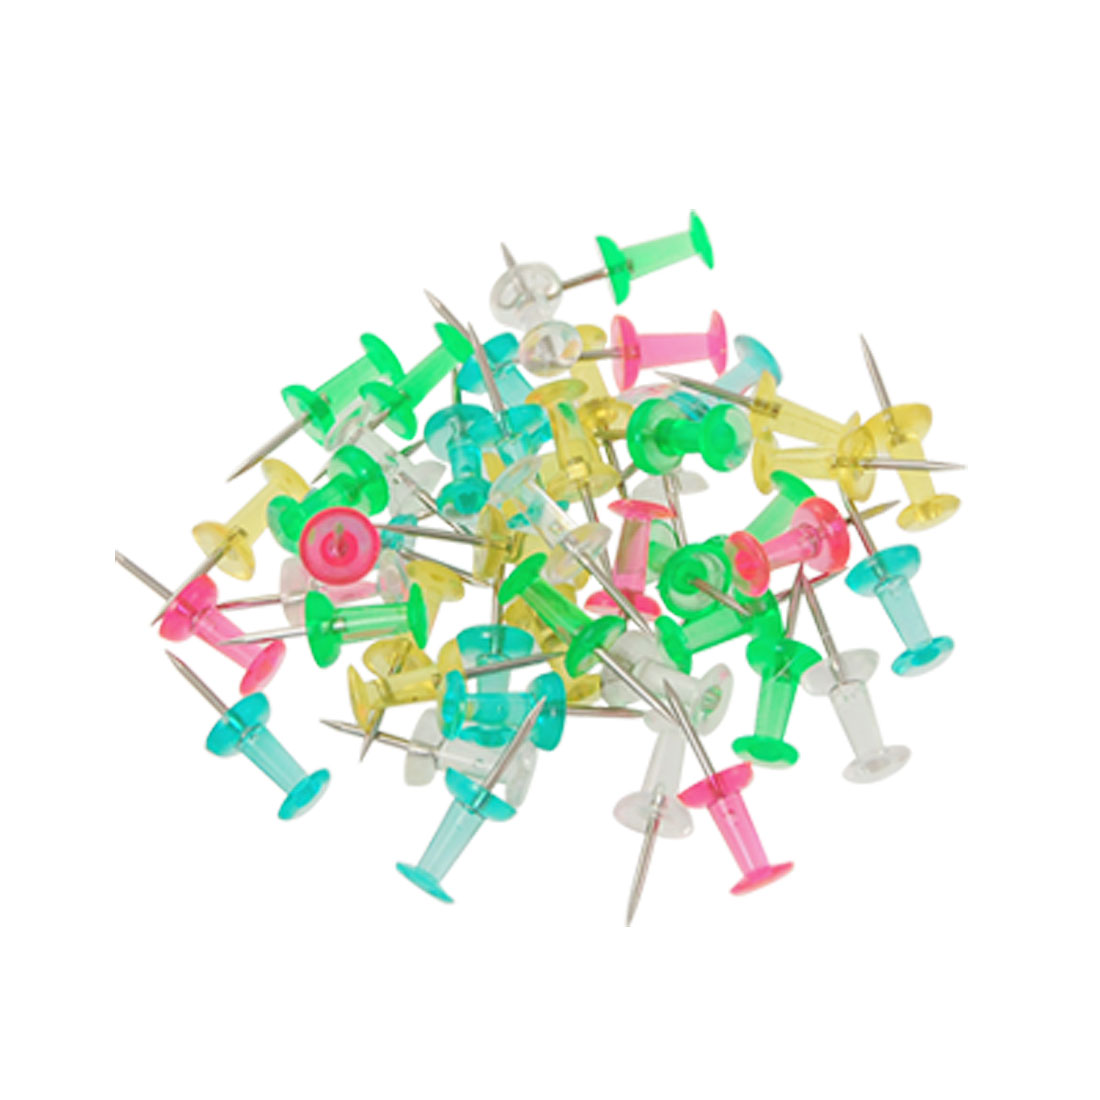 35 in 1 Metal Pin 5 Colors Plastic Steel Point Push Pins Head Thumb Tacks